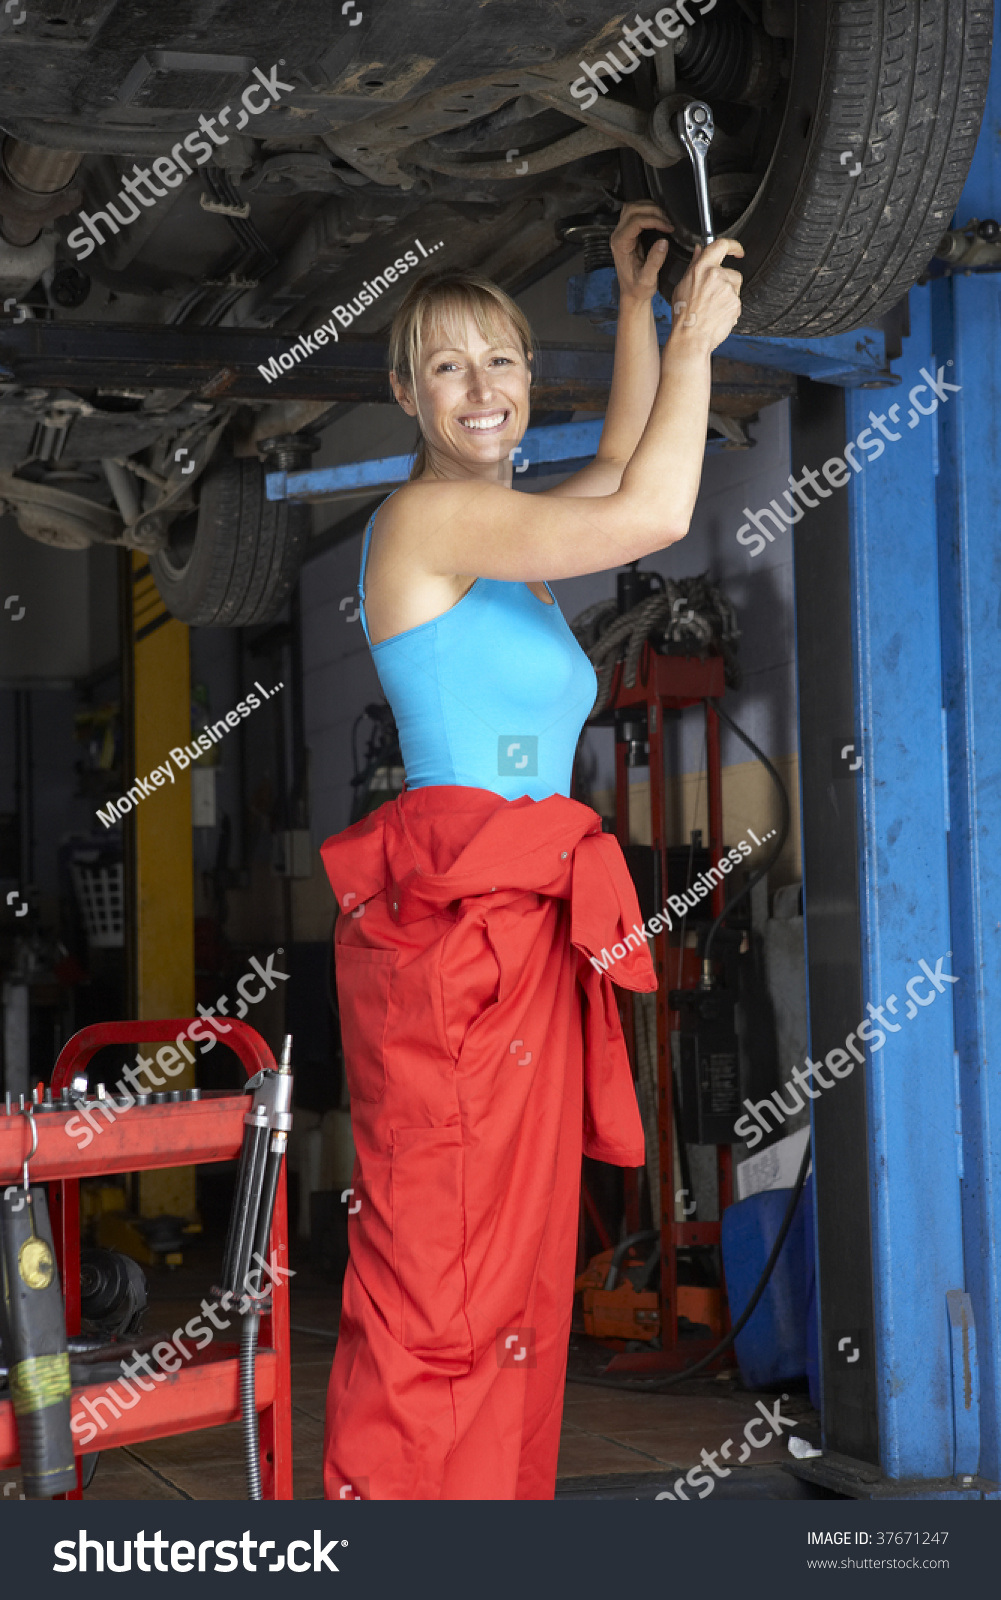 Stock Photo Female Mechanic Working On Car on Auto Mechanic Car Repair